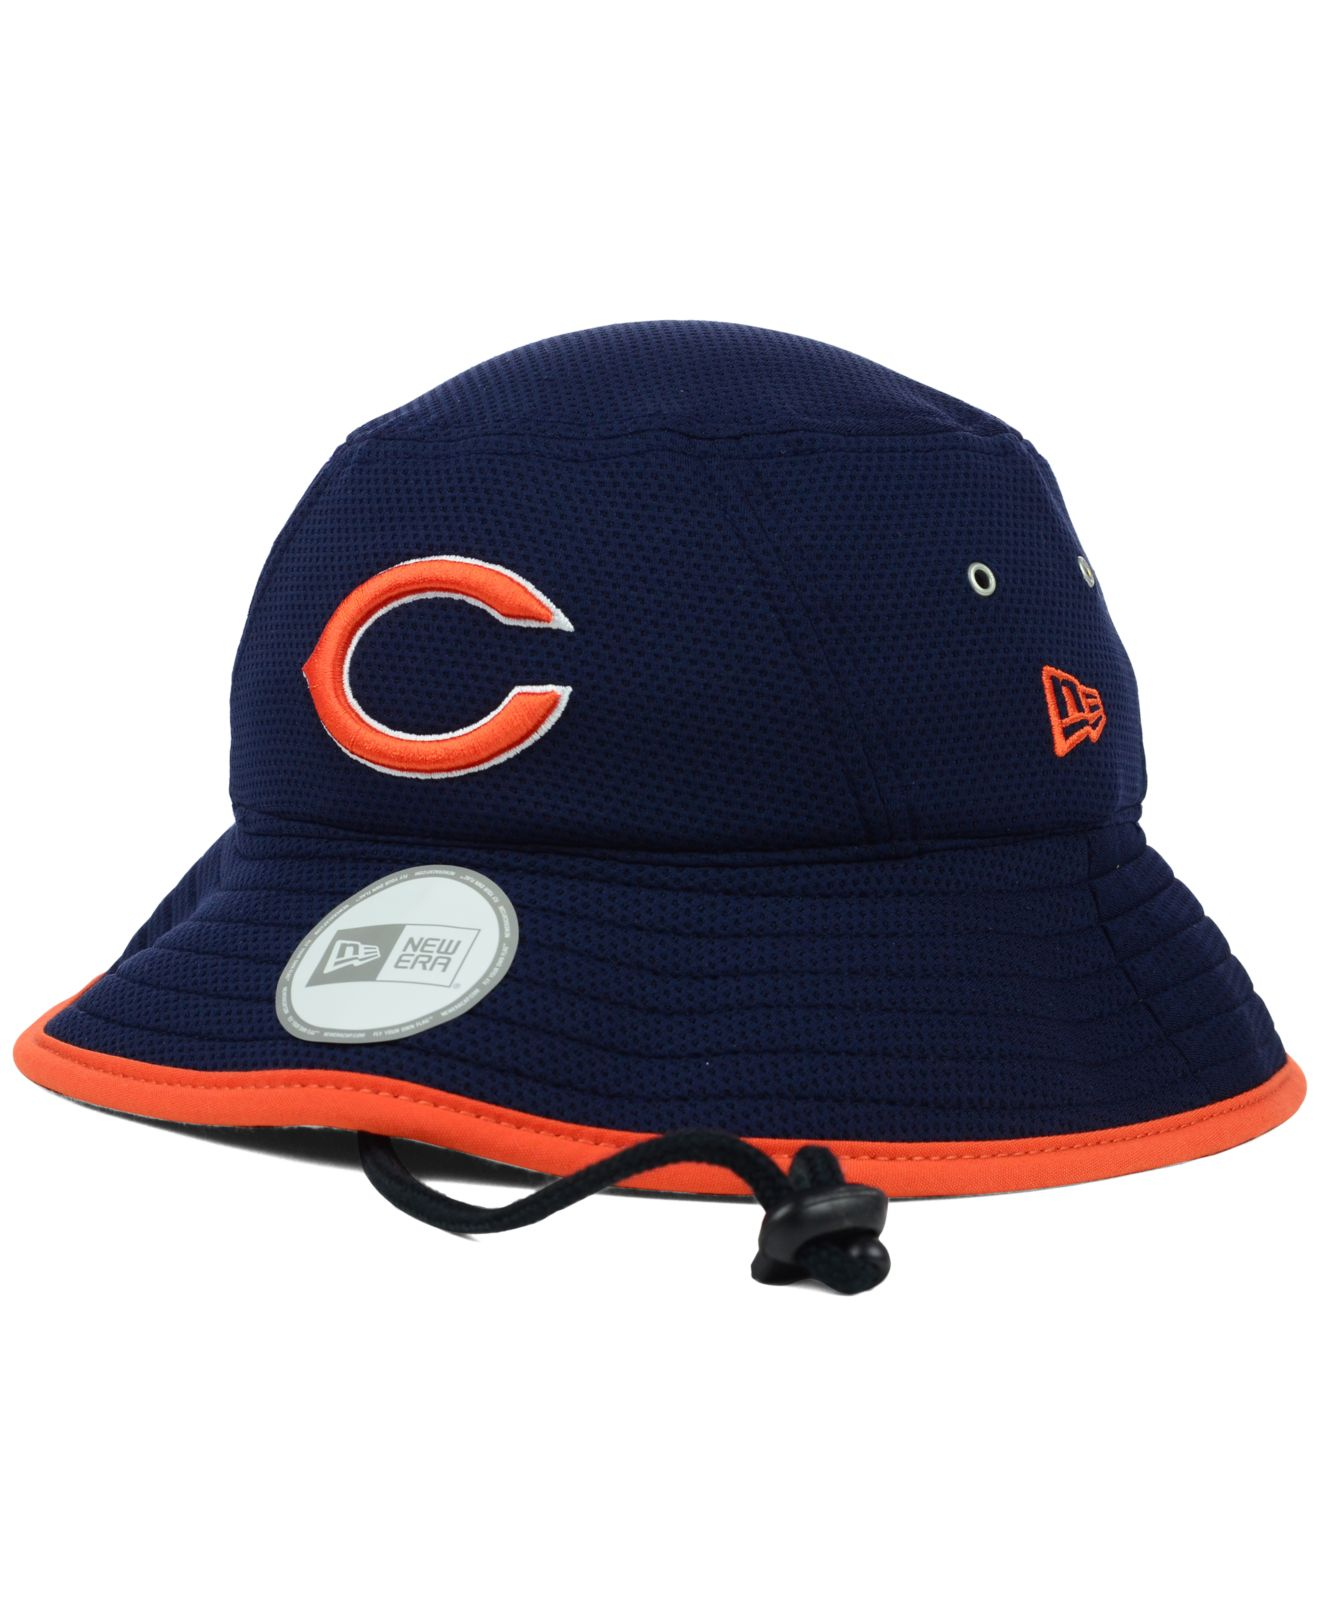 104a31890a8 Lyst - KTZ Chicago Bears Tc Training Bucket Hat in Blue for Men